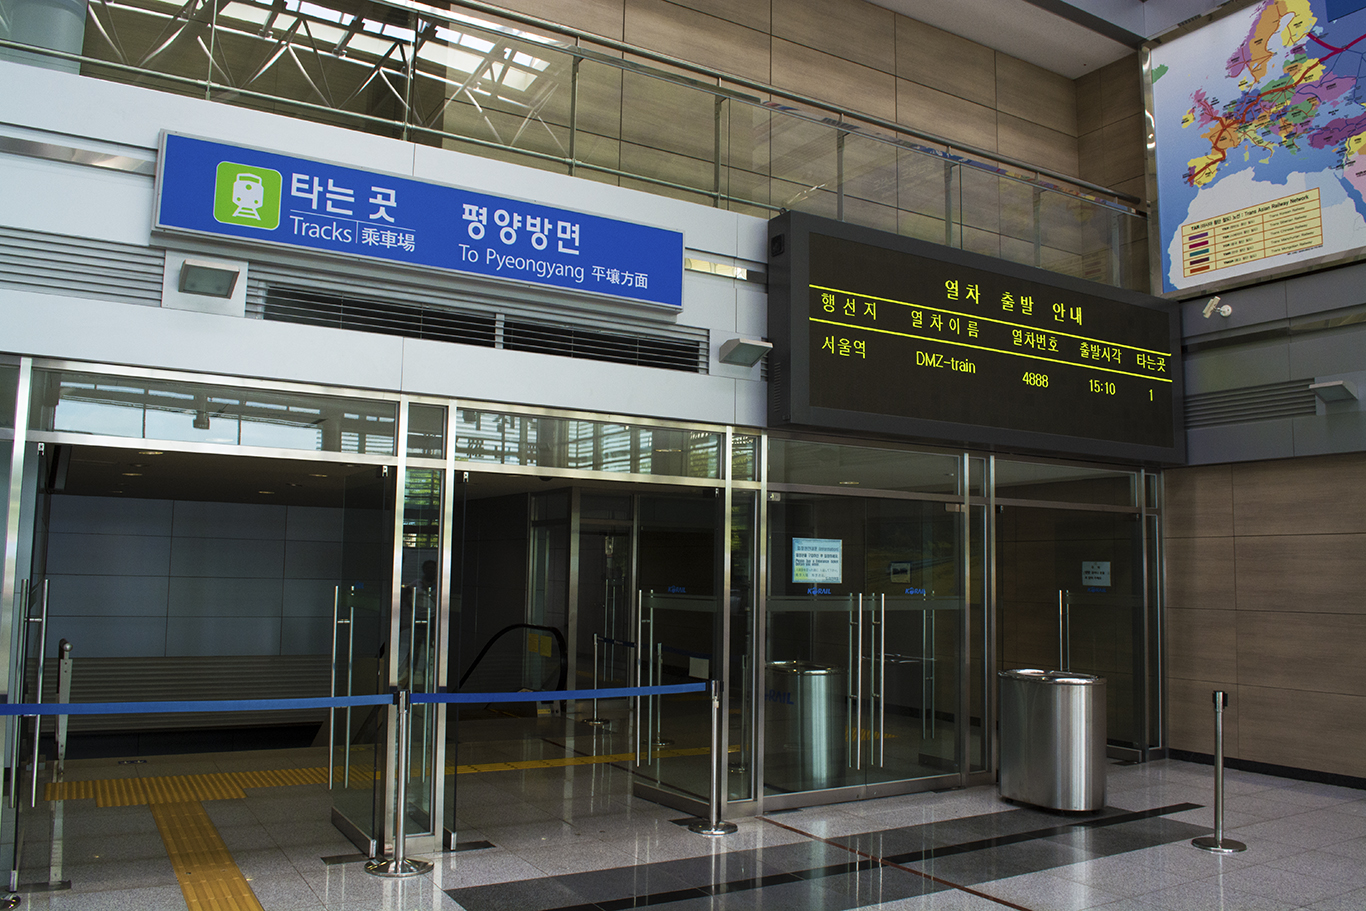 The departure terminal in Dorasan station inside the Korean DMZ. The banner for the train route to Pyongyang still stands despite its cancellation. Tourists can visit the train platform by purchasing a